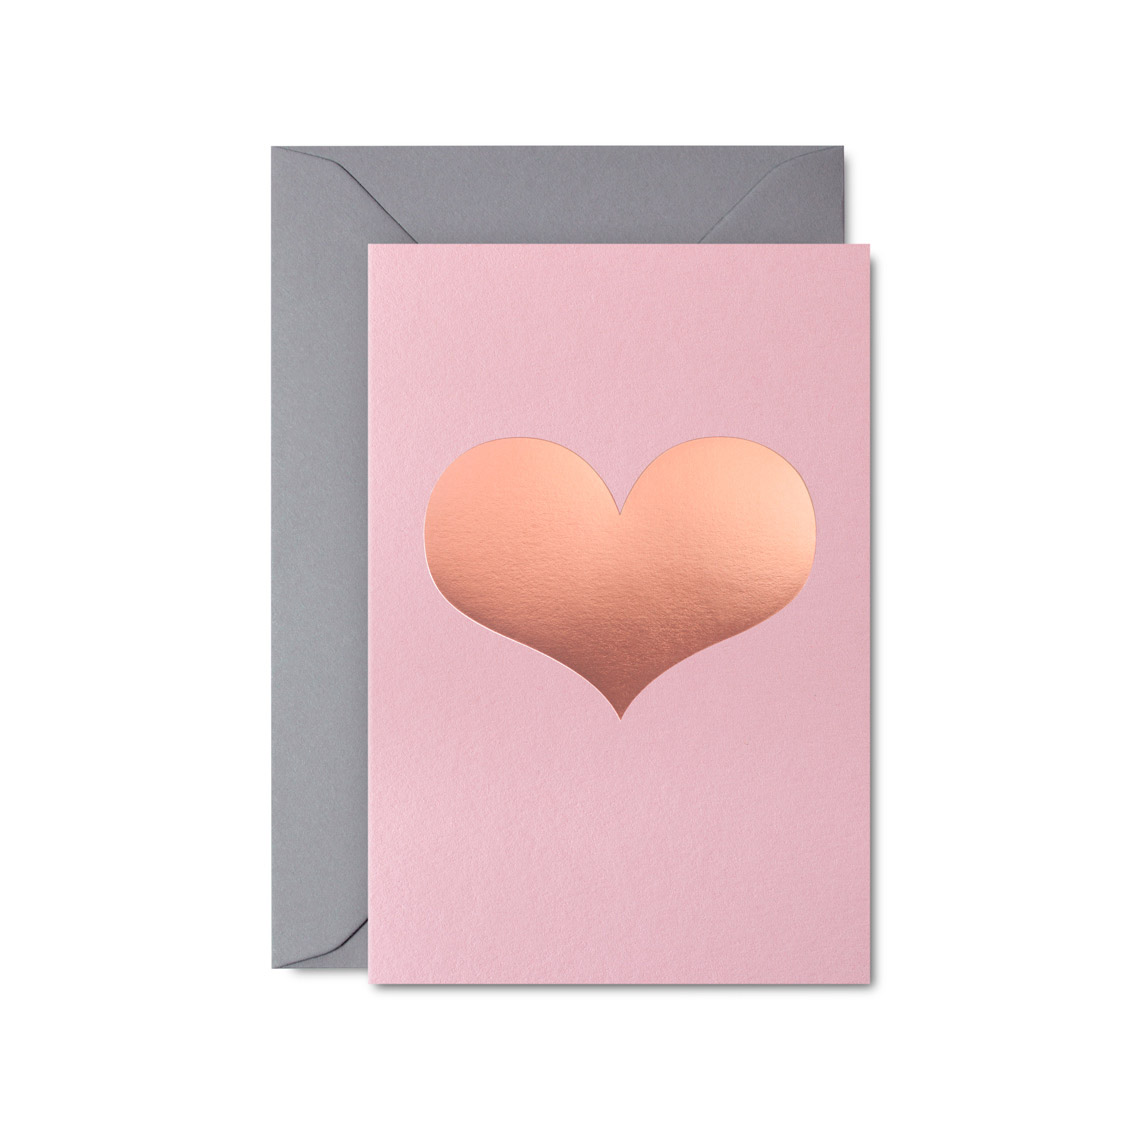 Love Heart by Studio Sarah